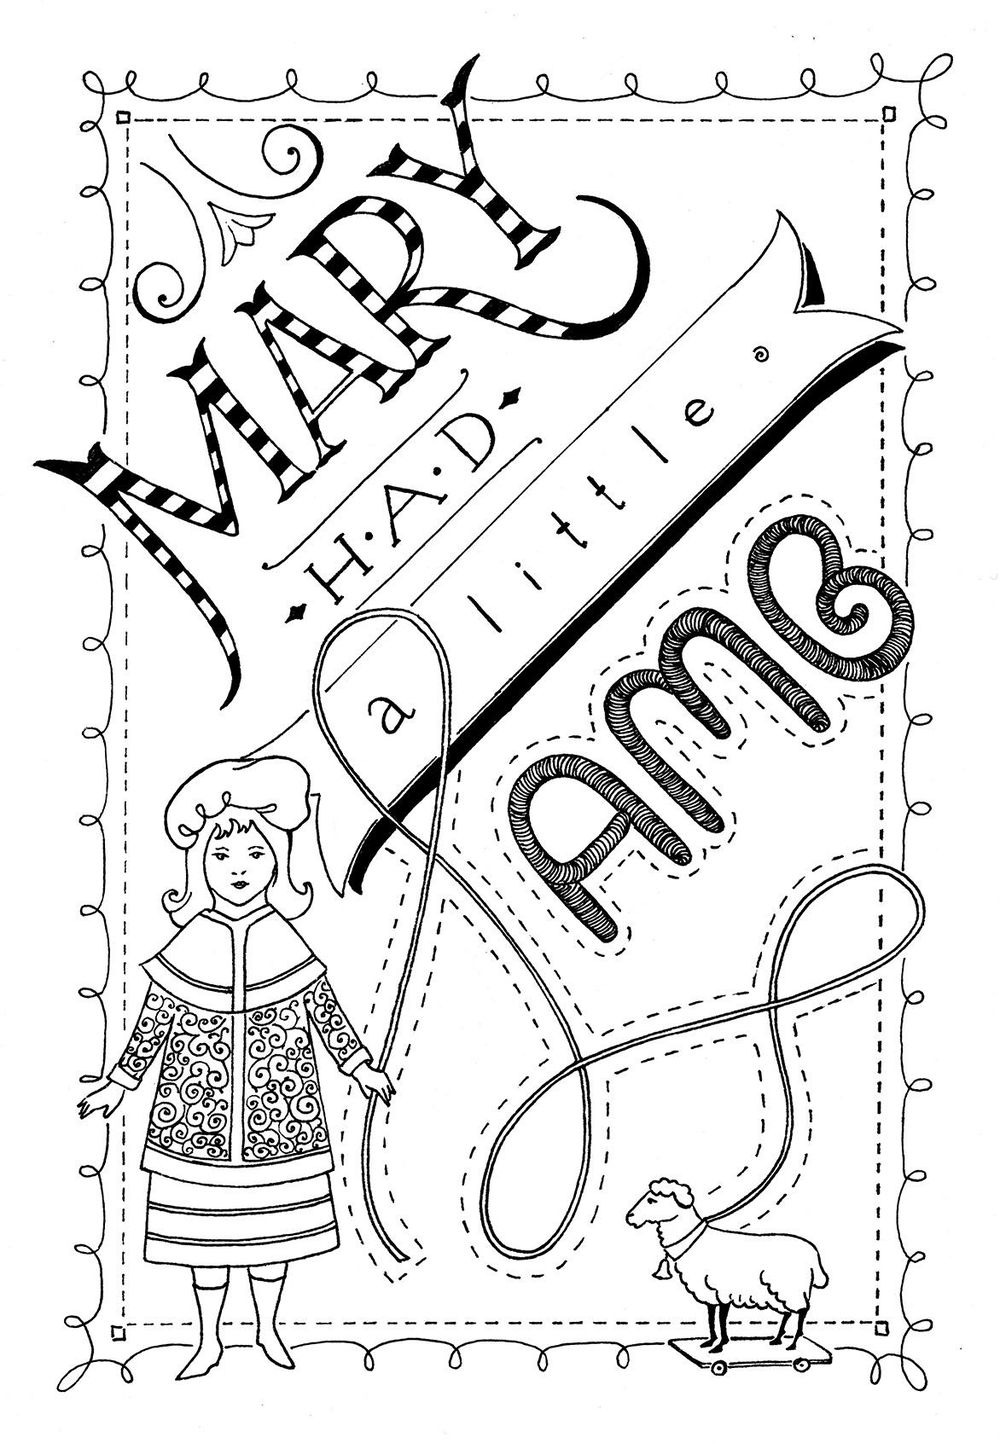 Mary had a little lamb - image 1 - student project